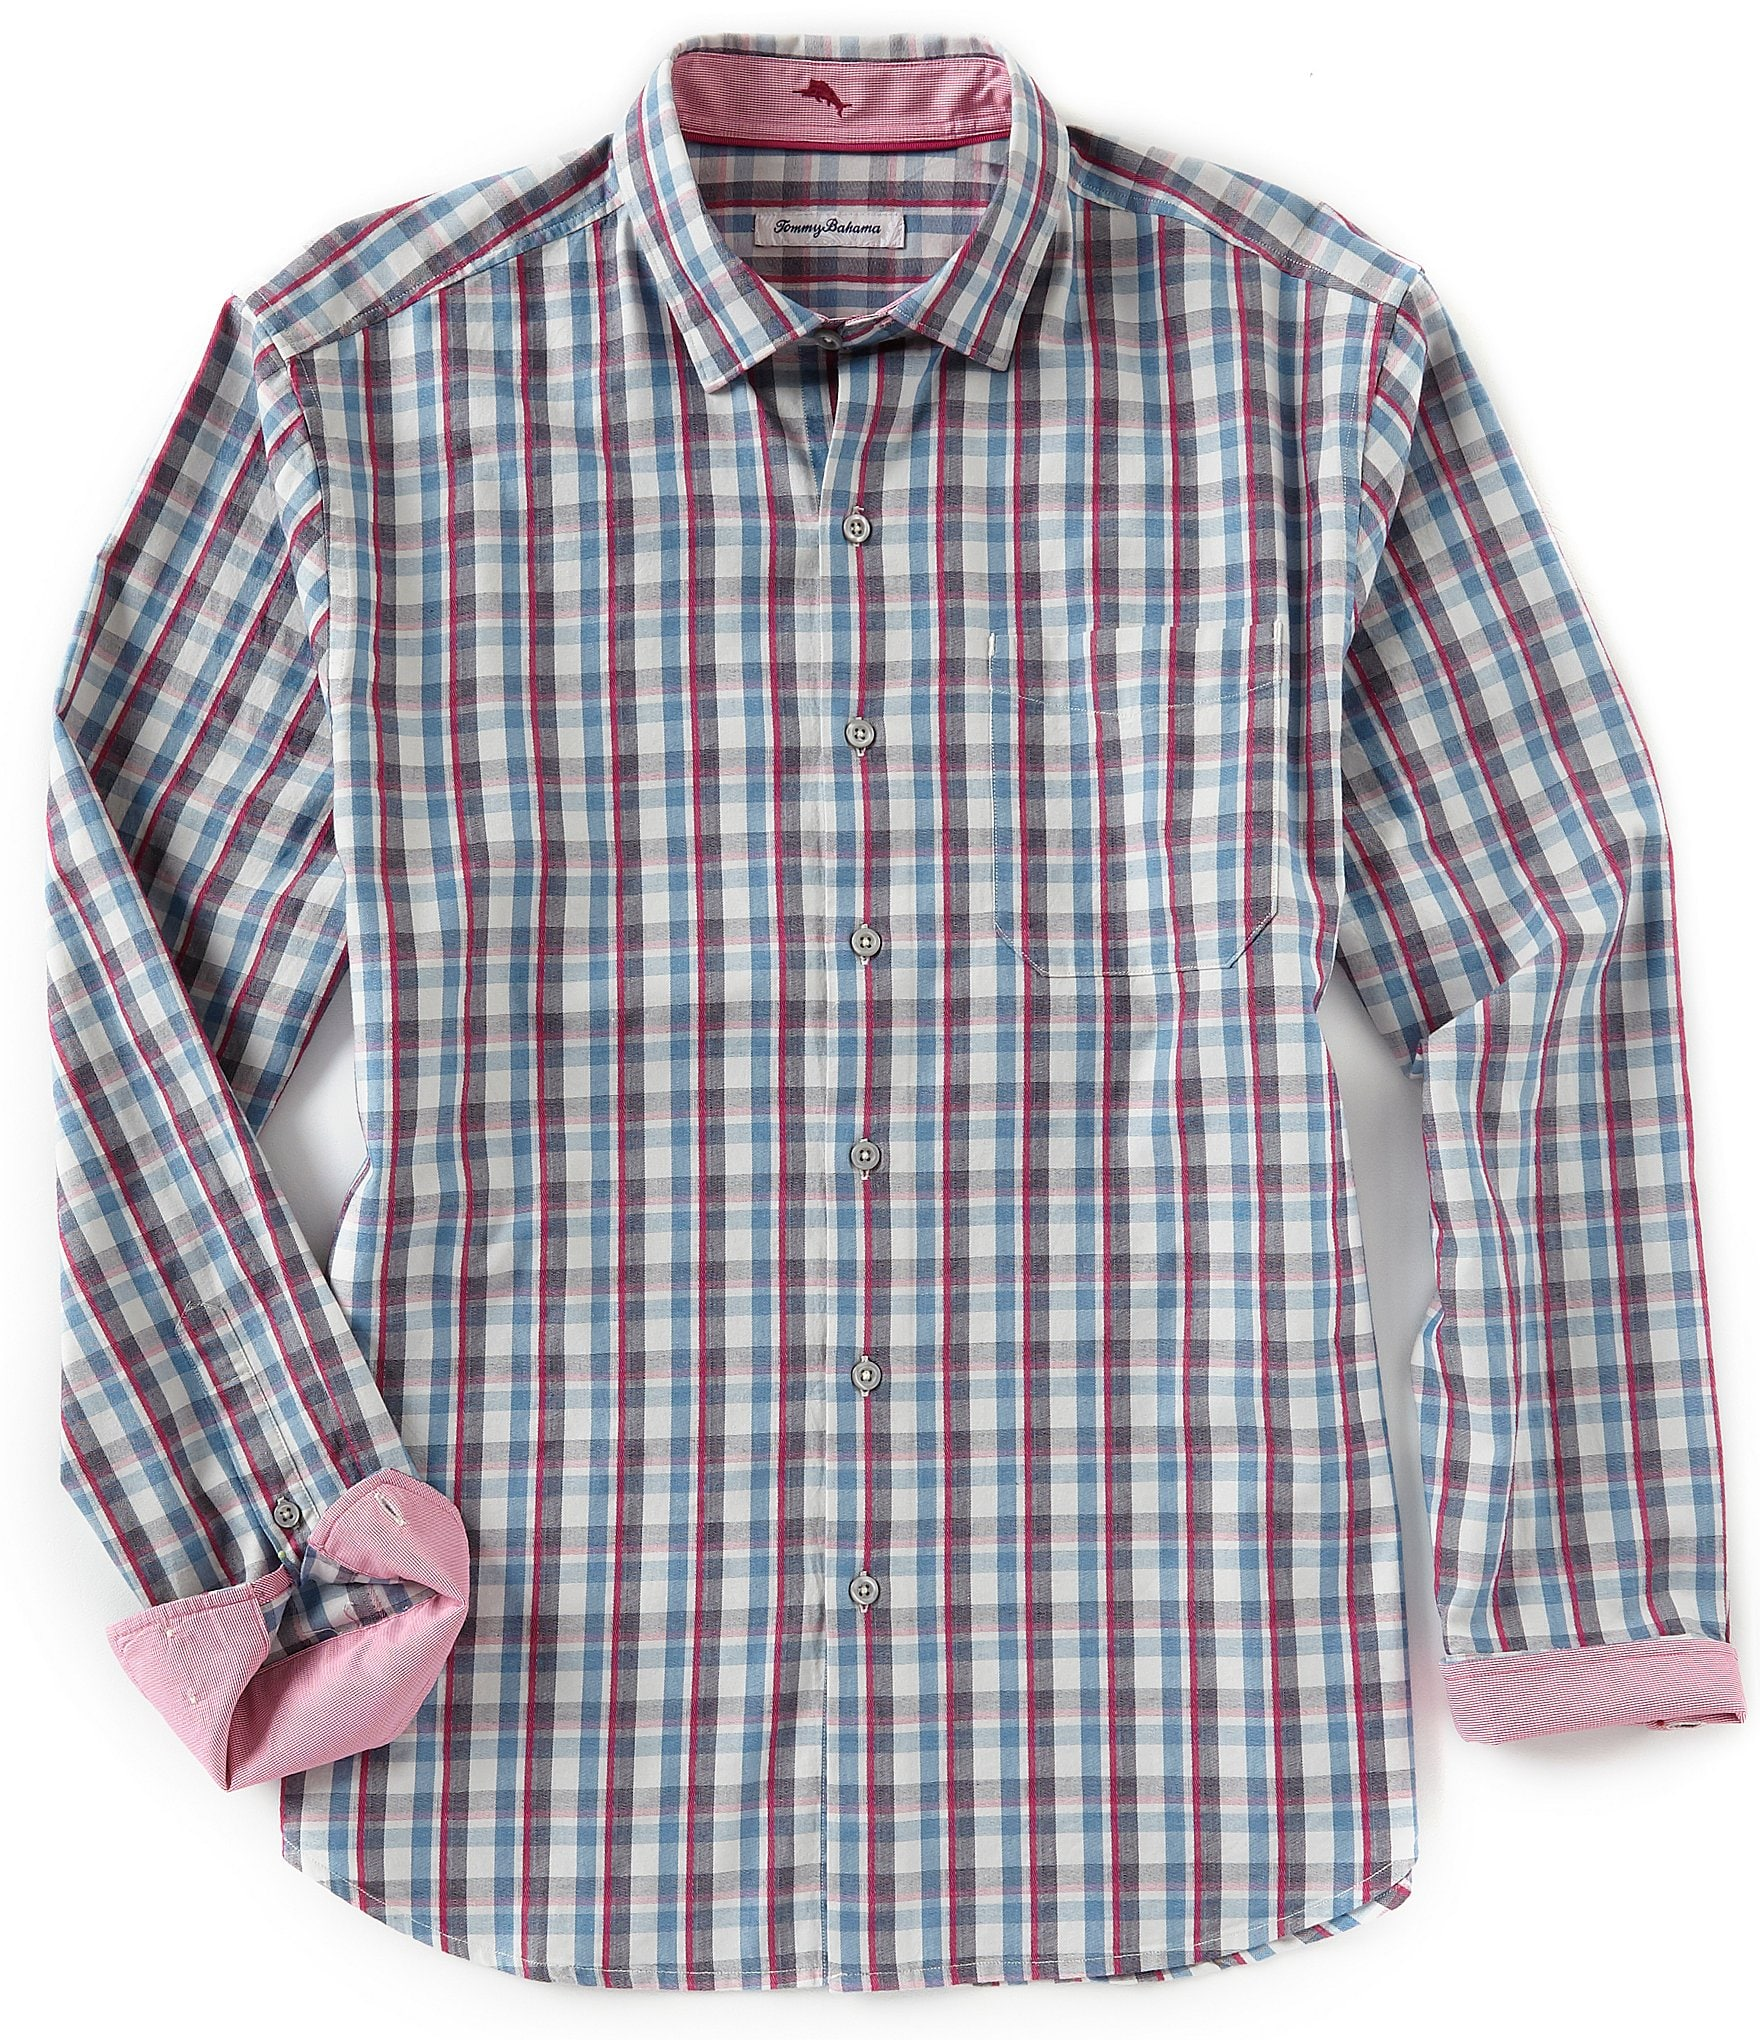 Sizing Chart With Common Left Chest Heart And Pocket: Tommy Bahama Palmar Plaid Long-Sleeve Woven Shirt